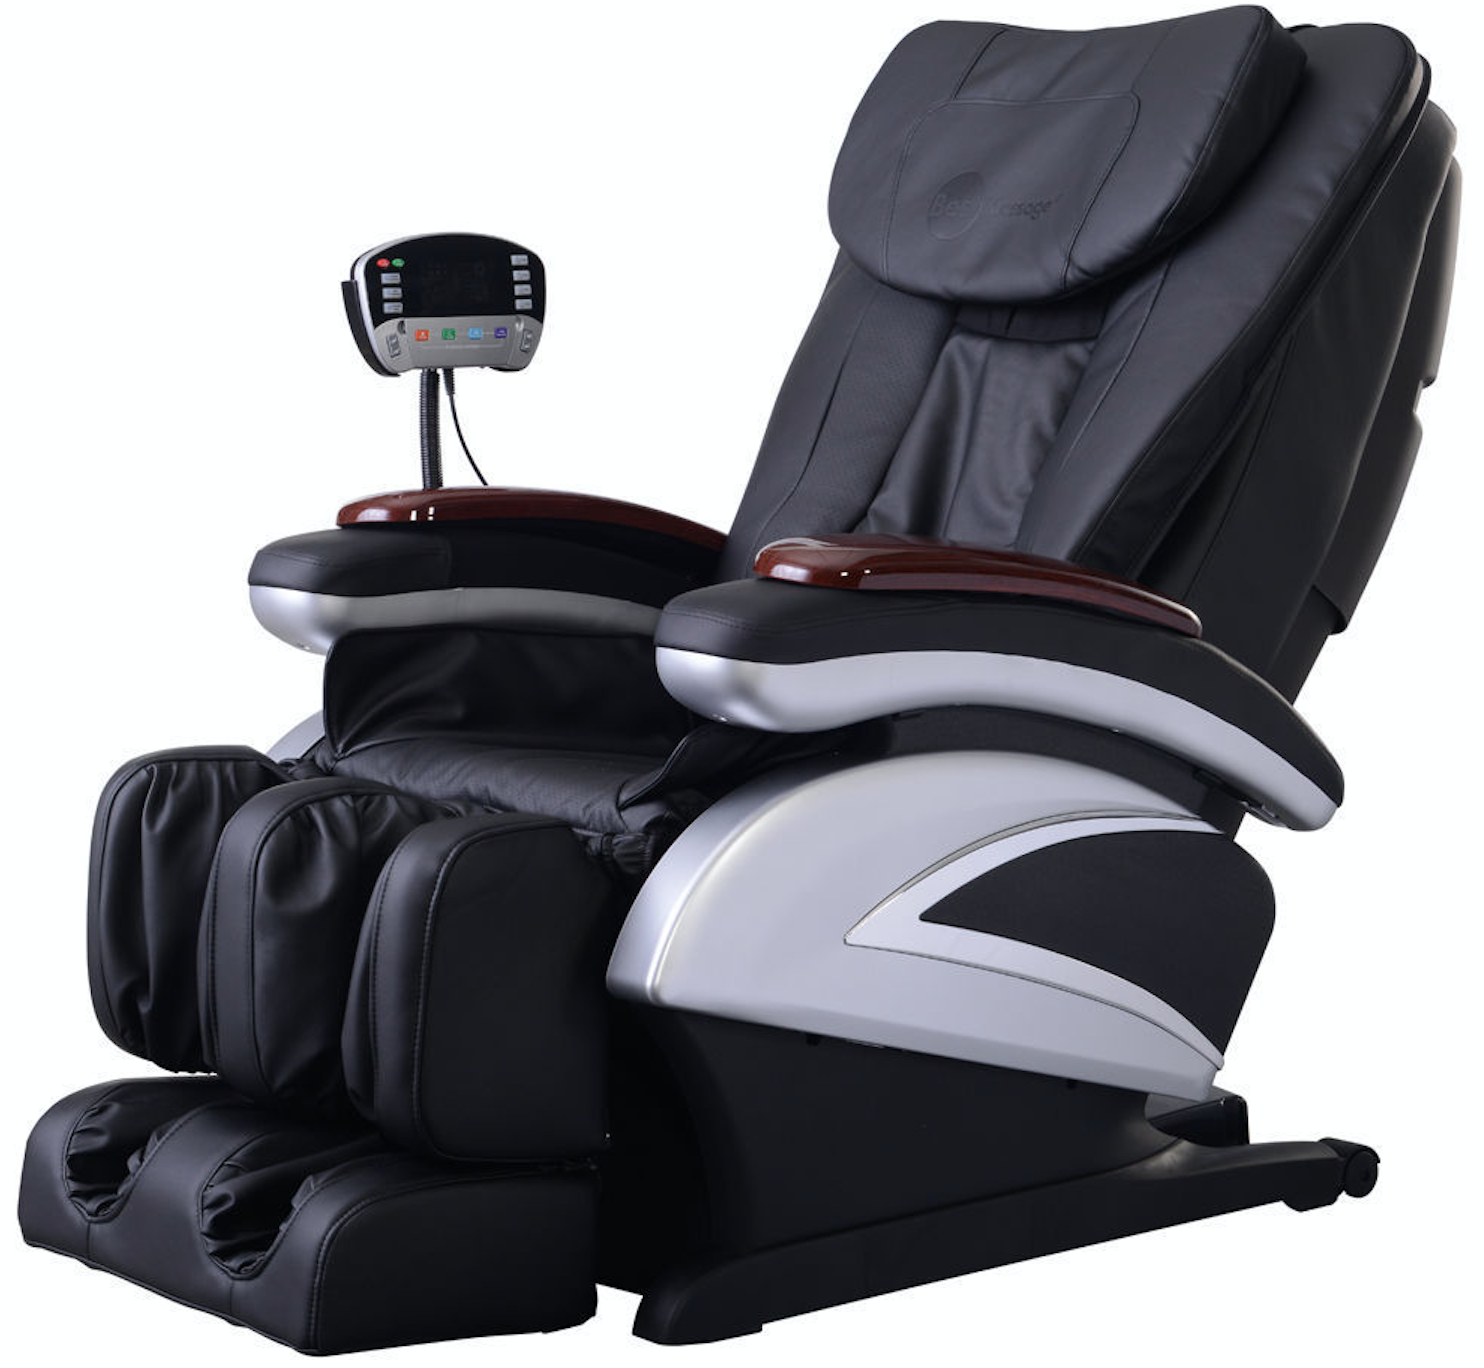 BestMassage EC-06C Shiatsu Massage Chair